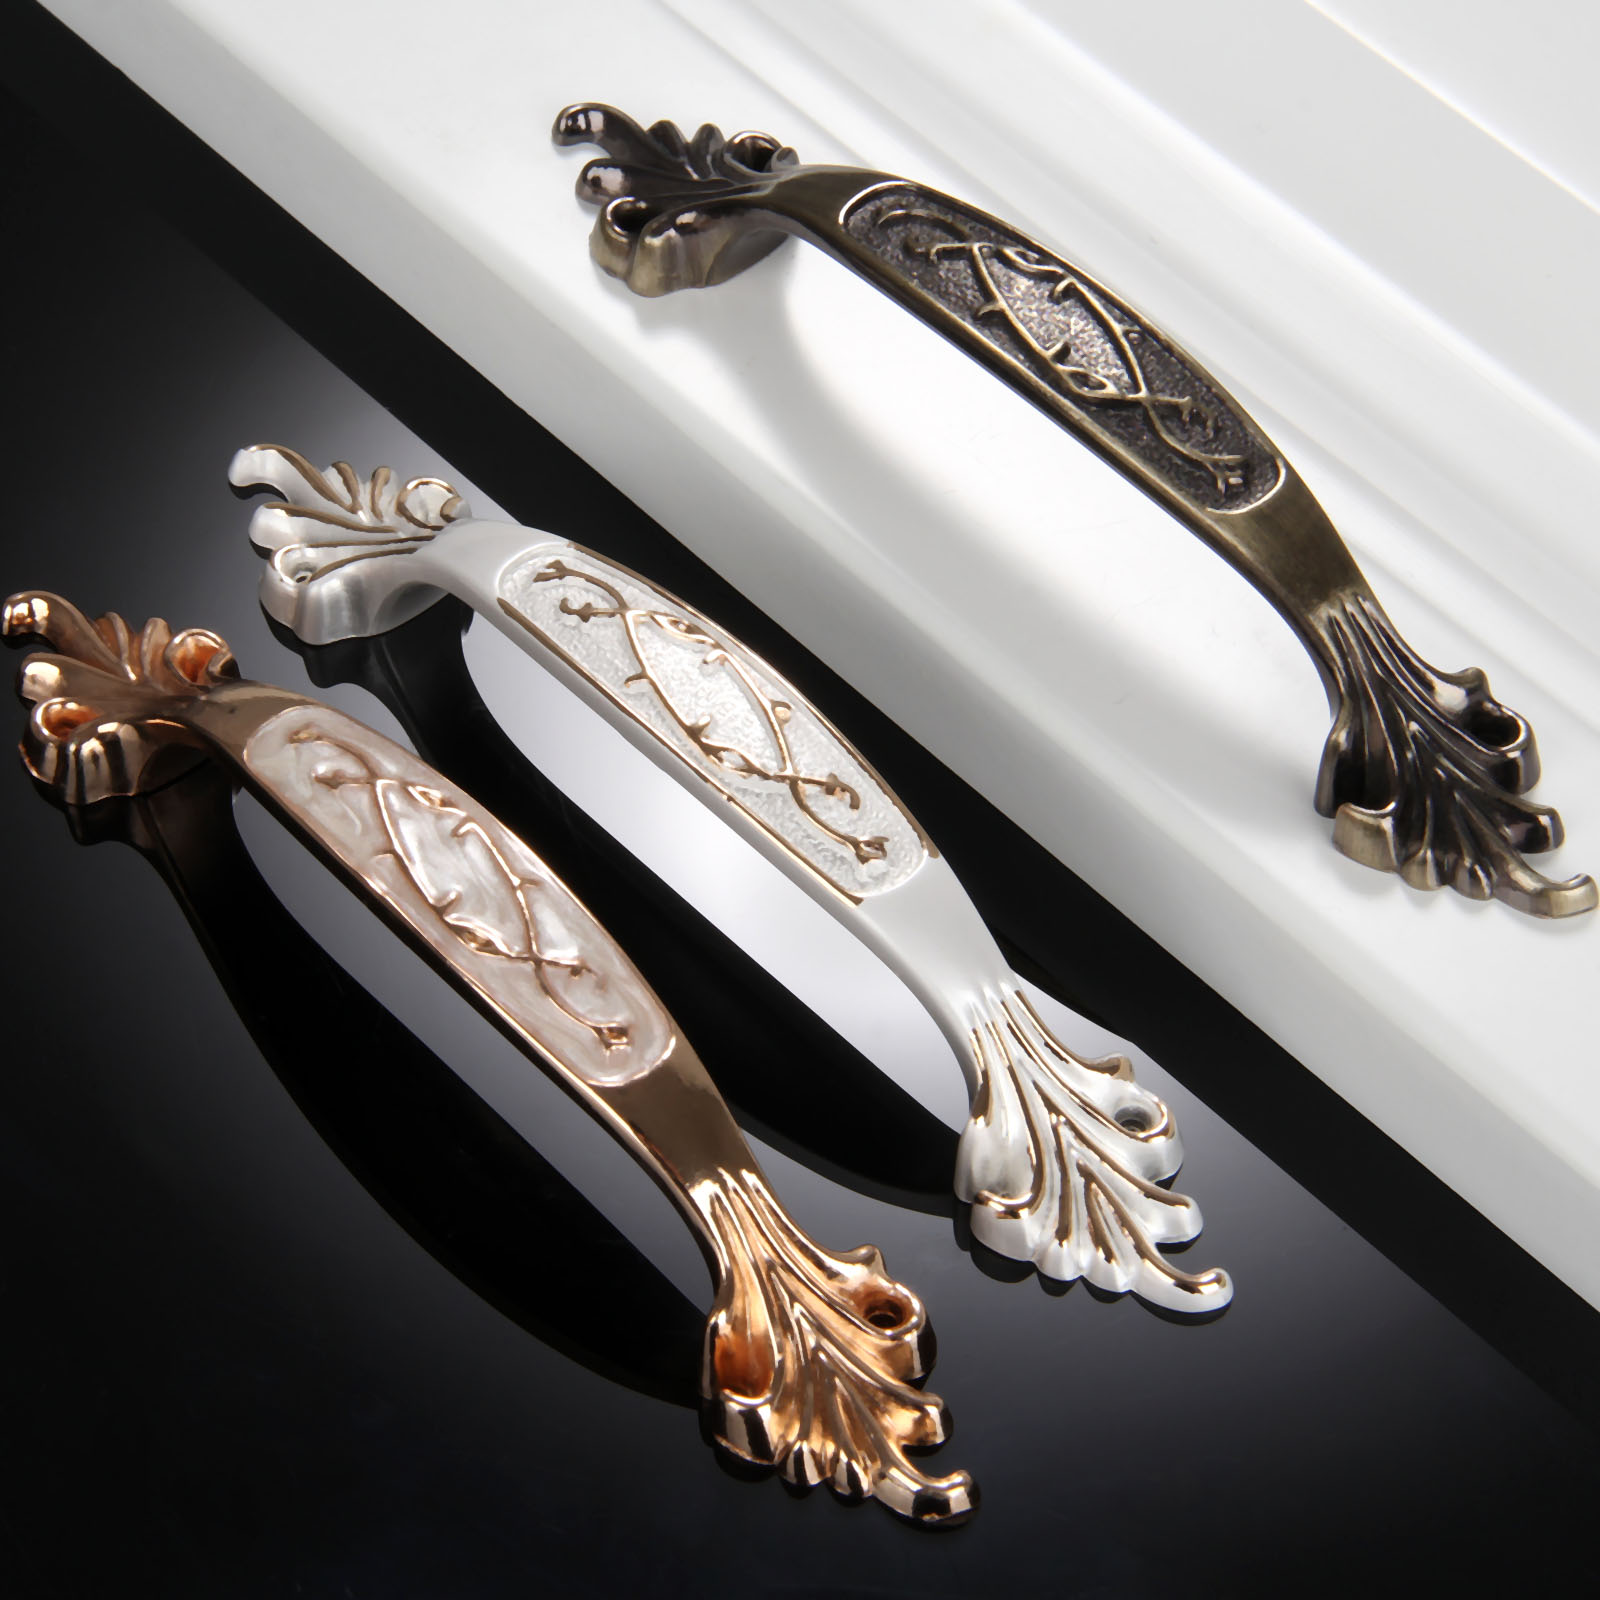 1Pc Furniture Handle 96mm Cabinet Knobs and Handle Zinc Alloy Door Knob Cupboard Drawer Kitchen Pull Handle Furniture Decoration 10 inch long cabinet handles and knobs drawer pull for furniture and cupboard simple wardrobe handle zinc alloy door handle